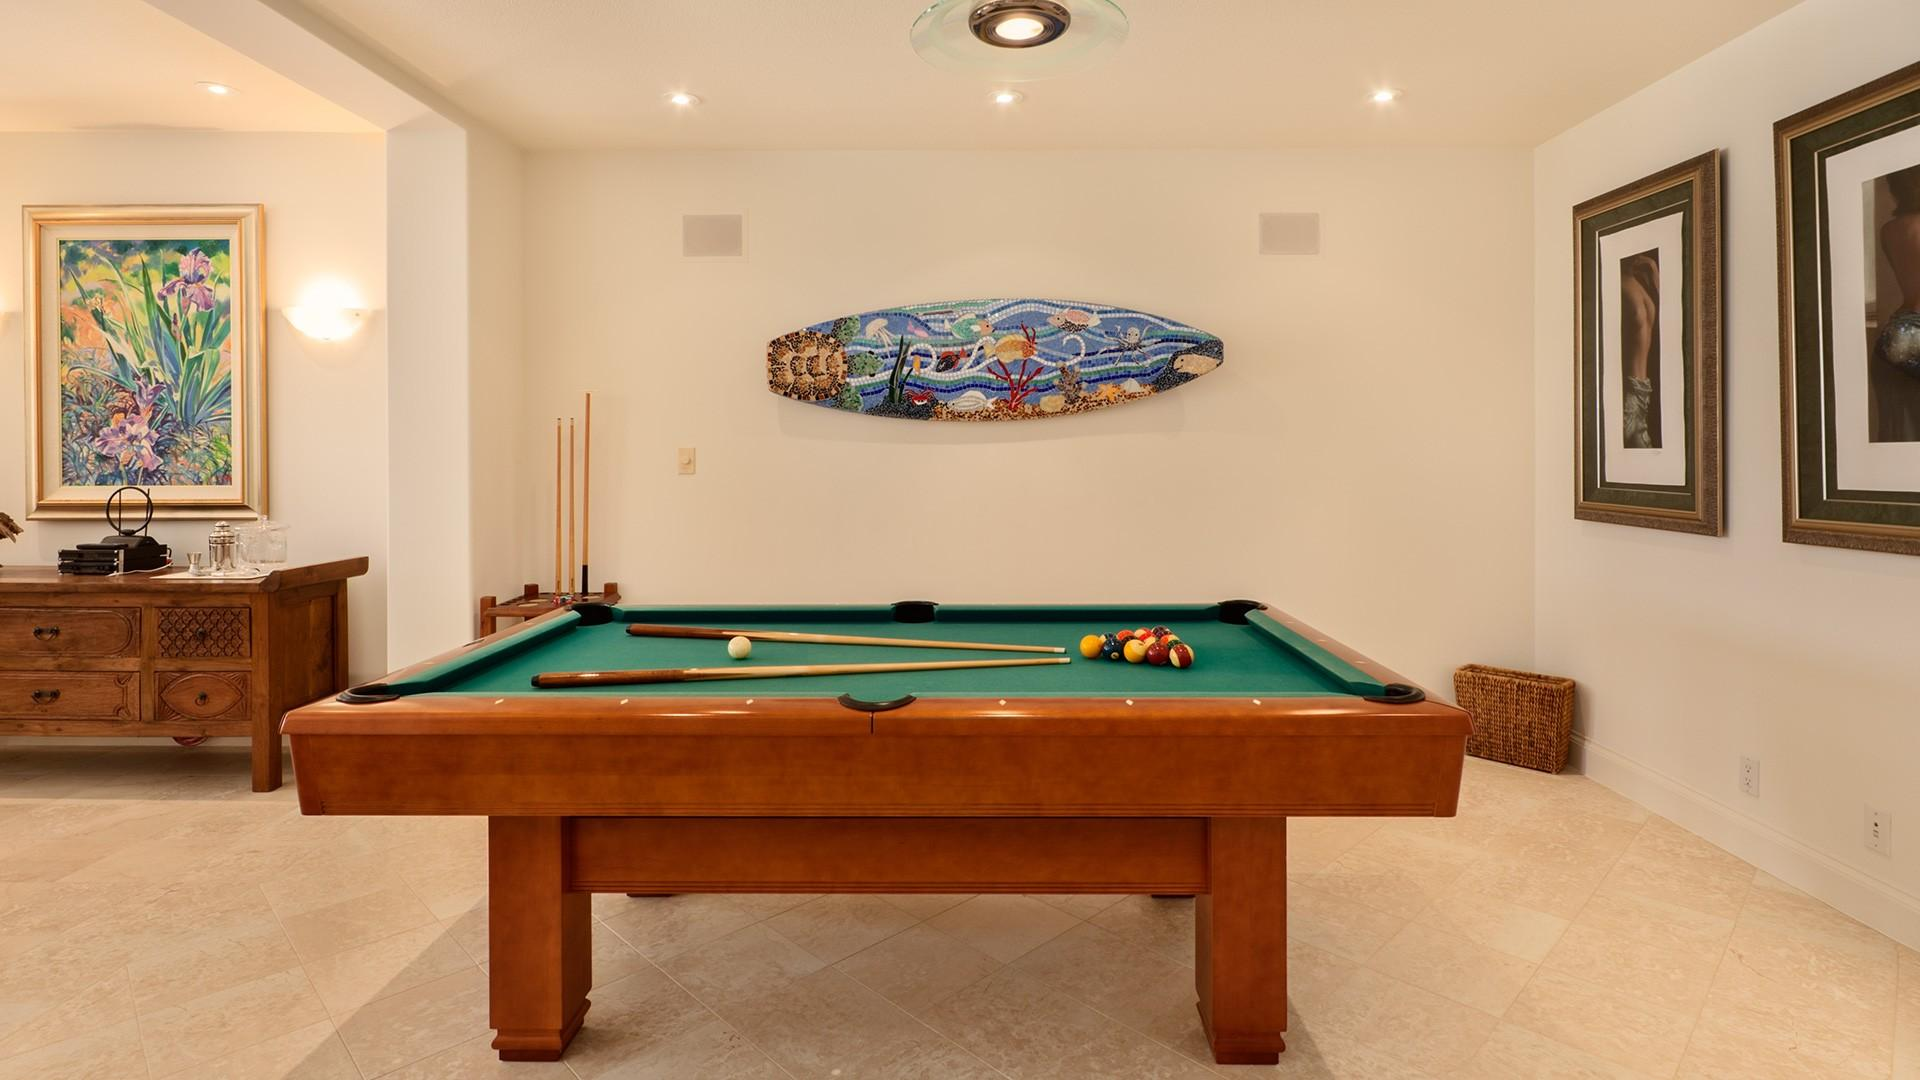 A pool table offers another opportunity for family fun.